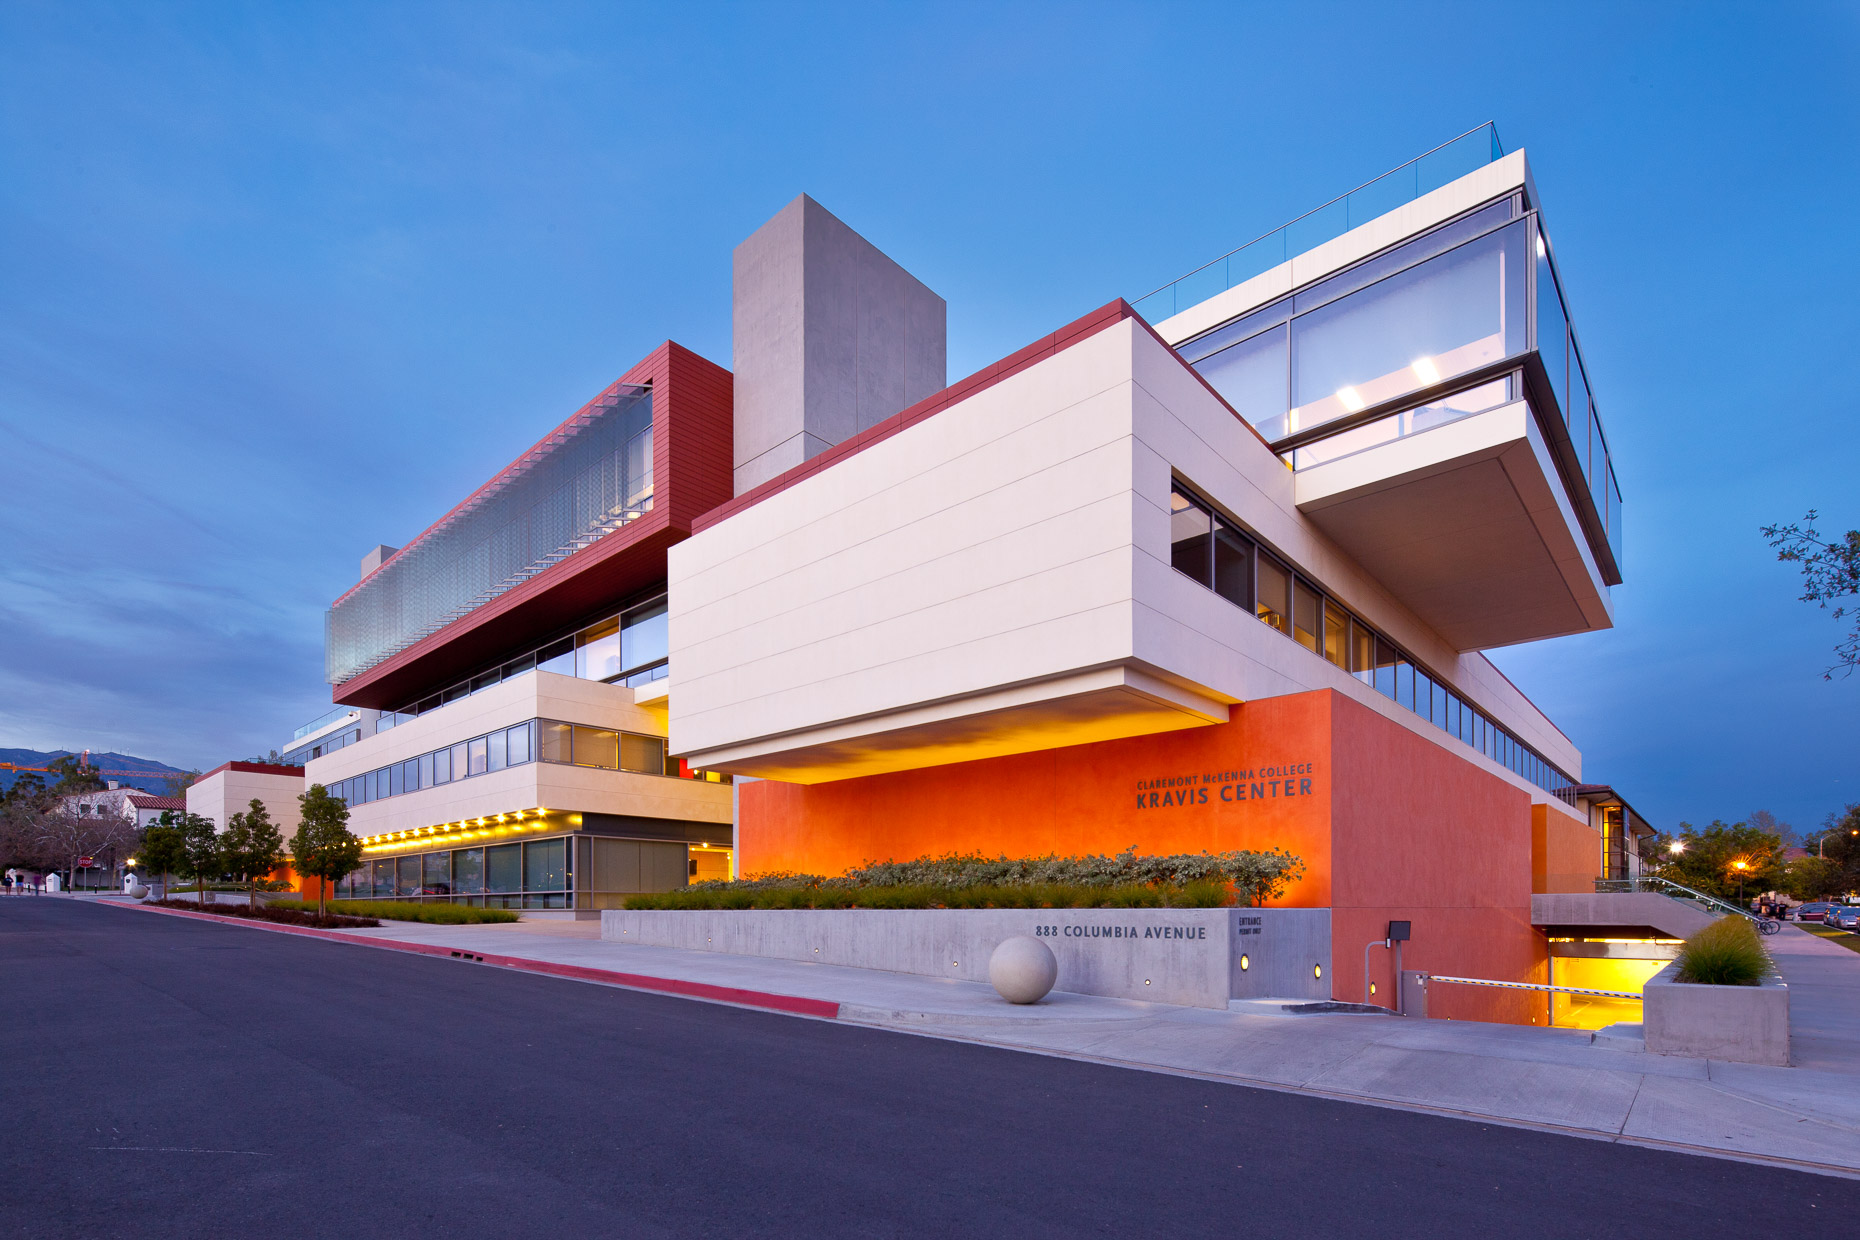 Kravis Center at Claremont McKenna College in Claremont, California. Modern architecture. David Zaitz Photography.